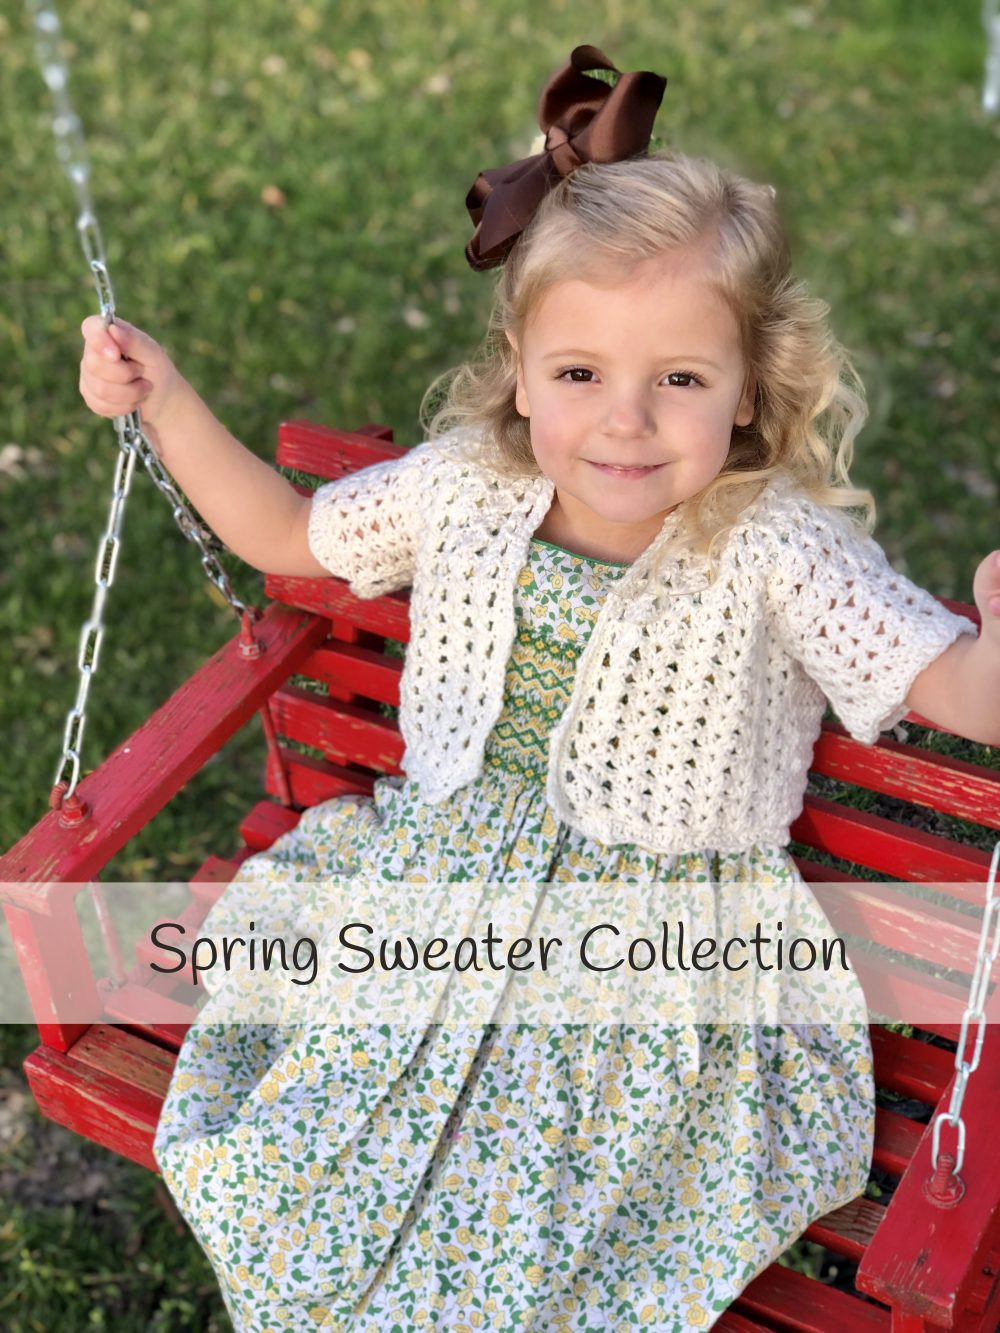 Spring Sweater Collection Lilly